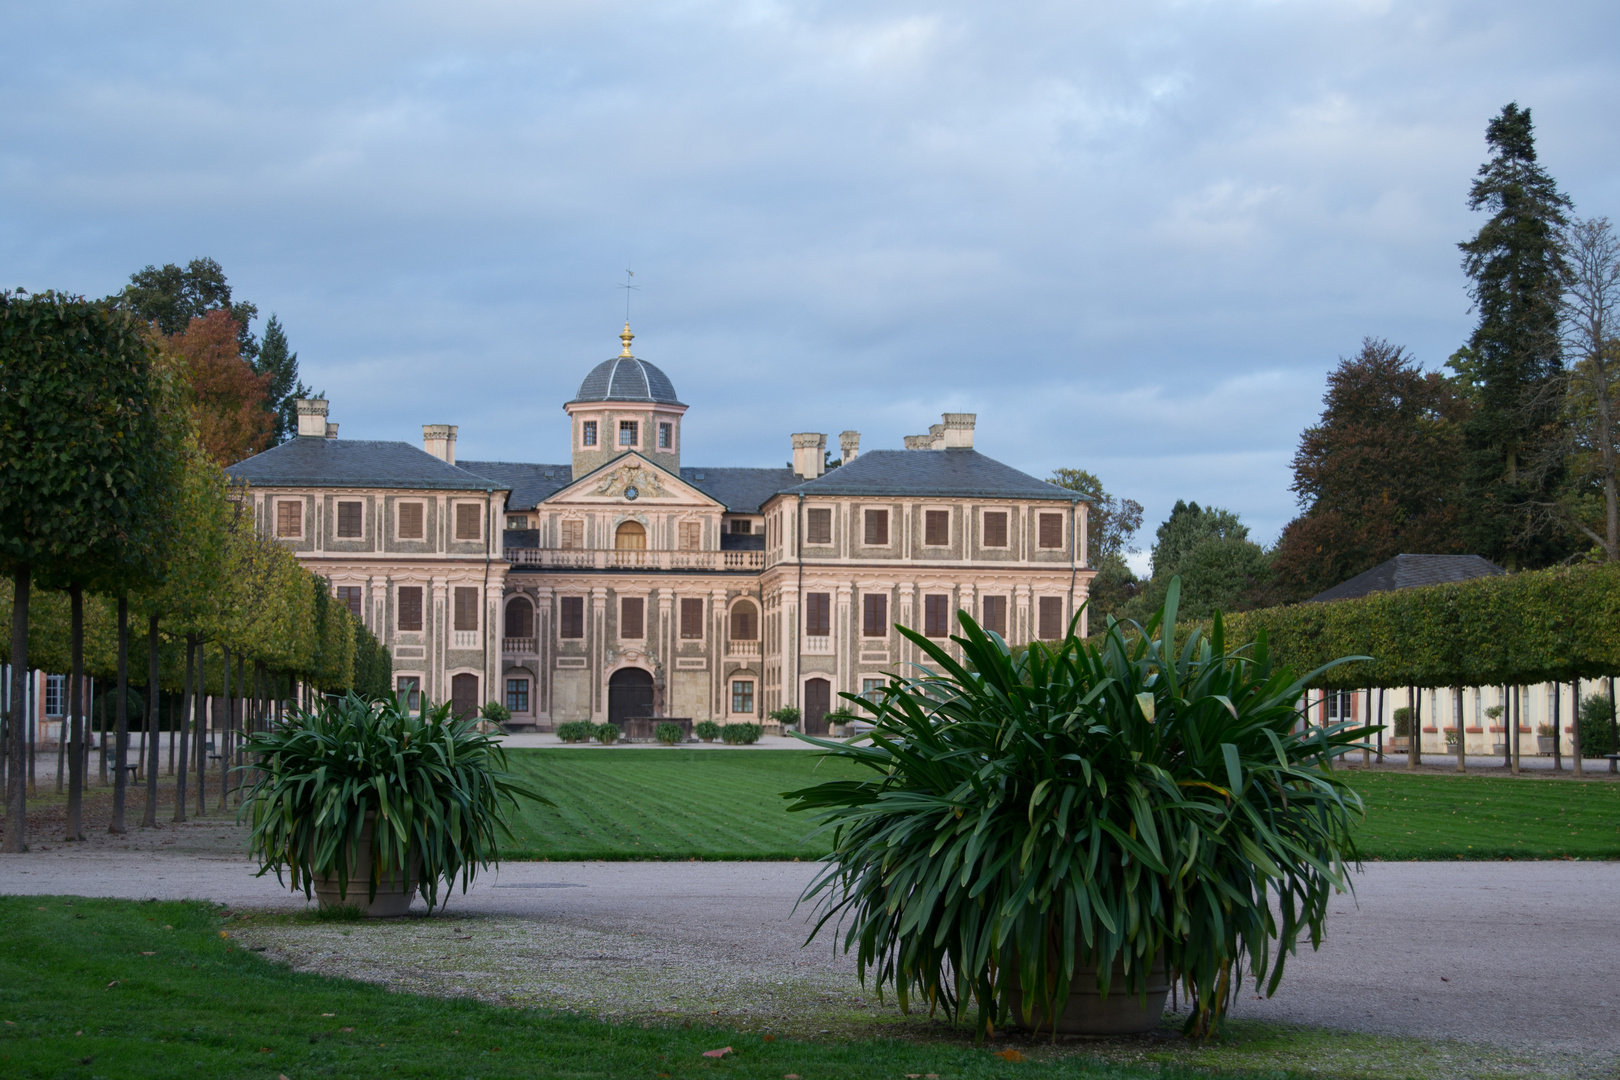 Schloss Favorite in Rastatt